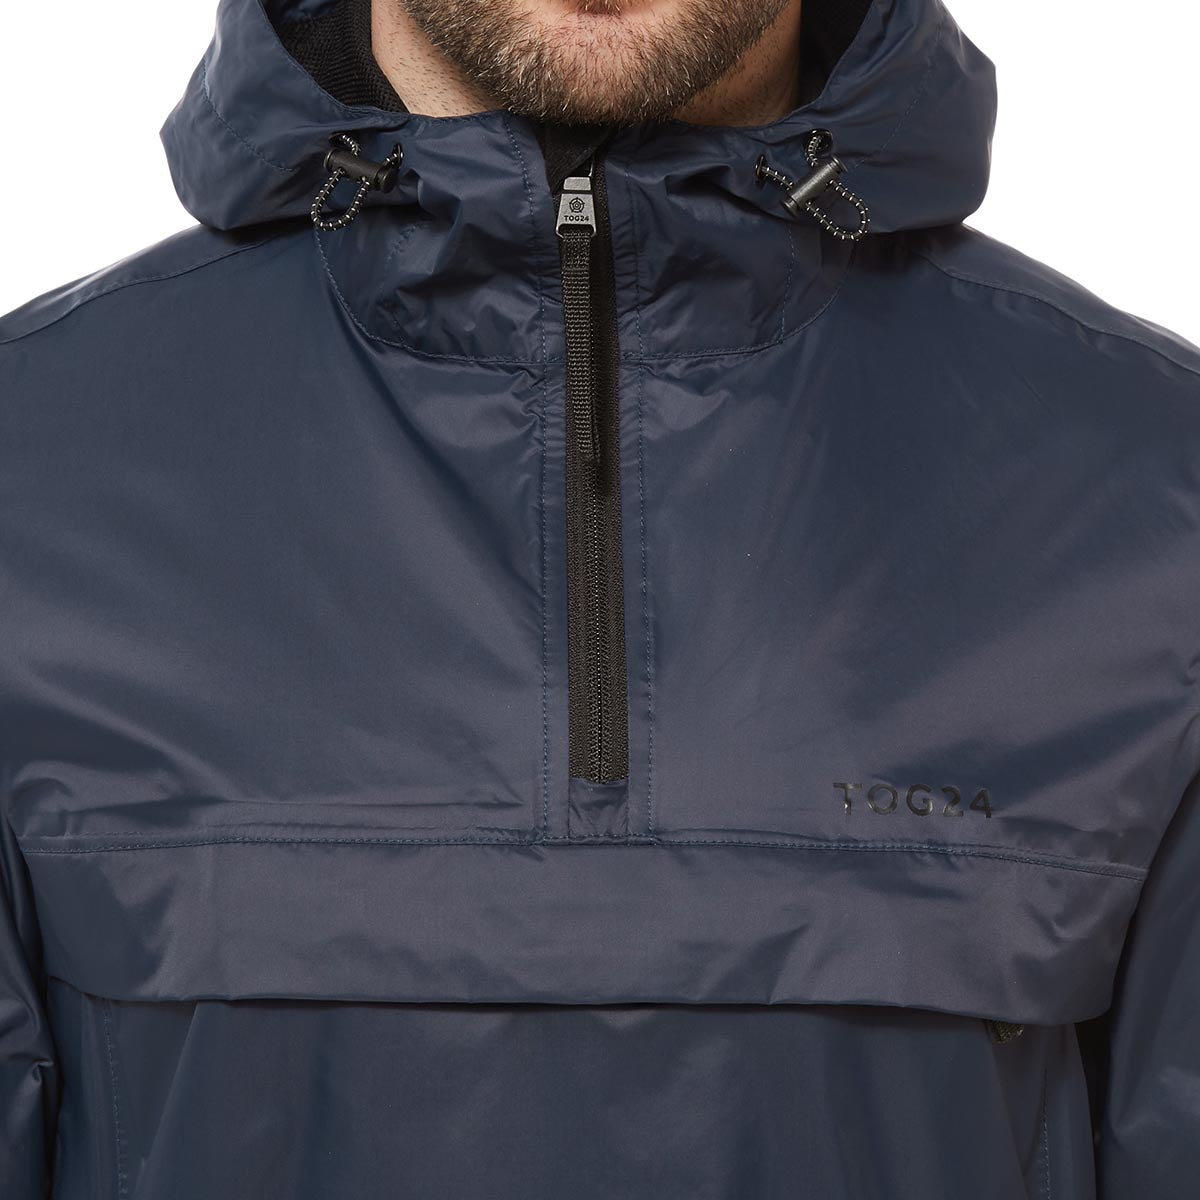 Craven Mens Waterproof Packaway Overhead - Navy image 4